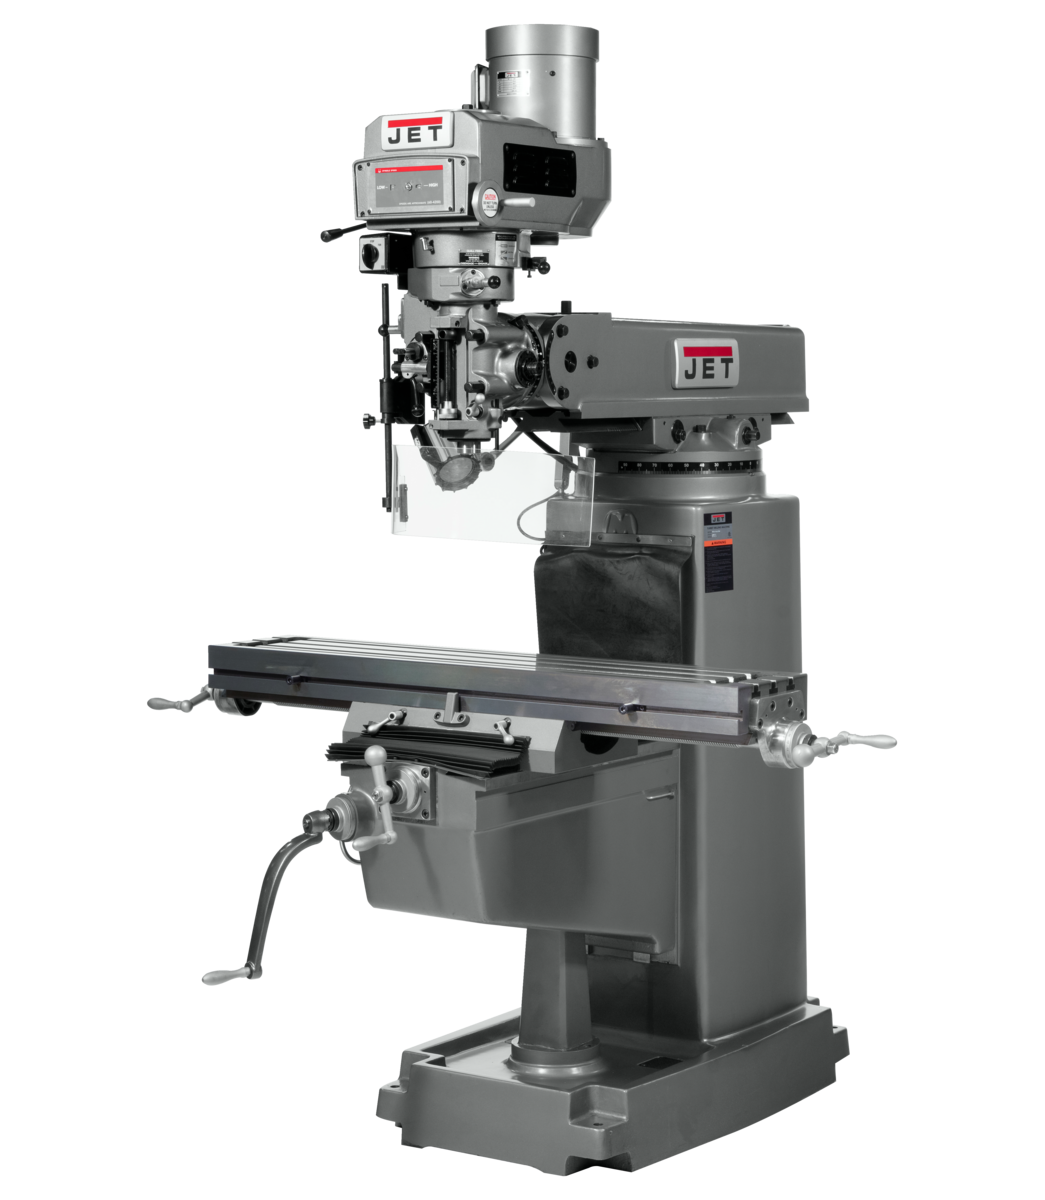 JTM-1050VS2 Mill With 3-Axis Newall DP700 DRO (Quill) With X and Y-Axis Powerfeeds